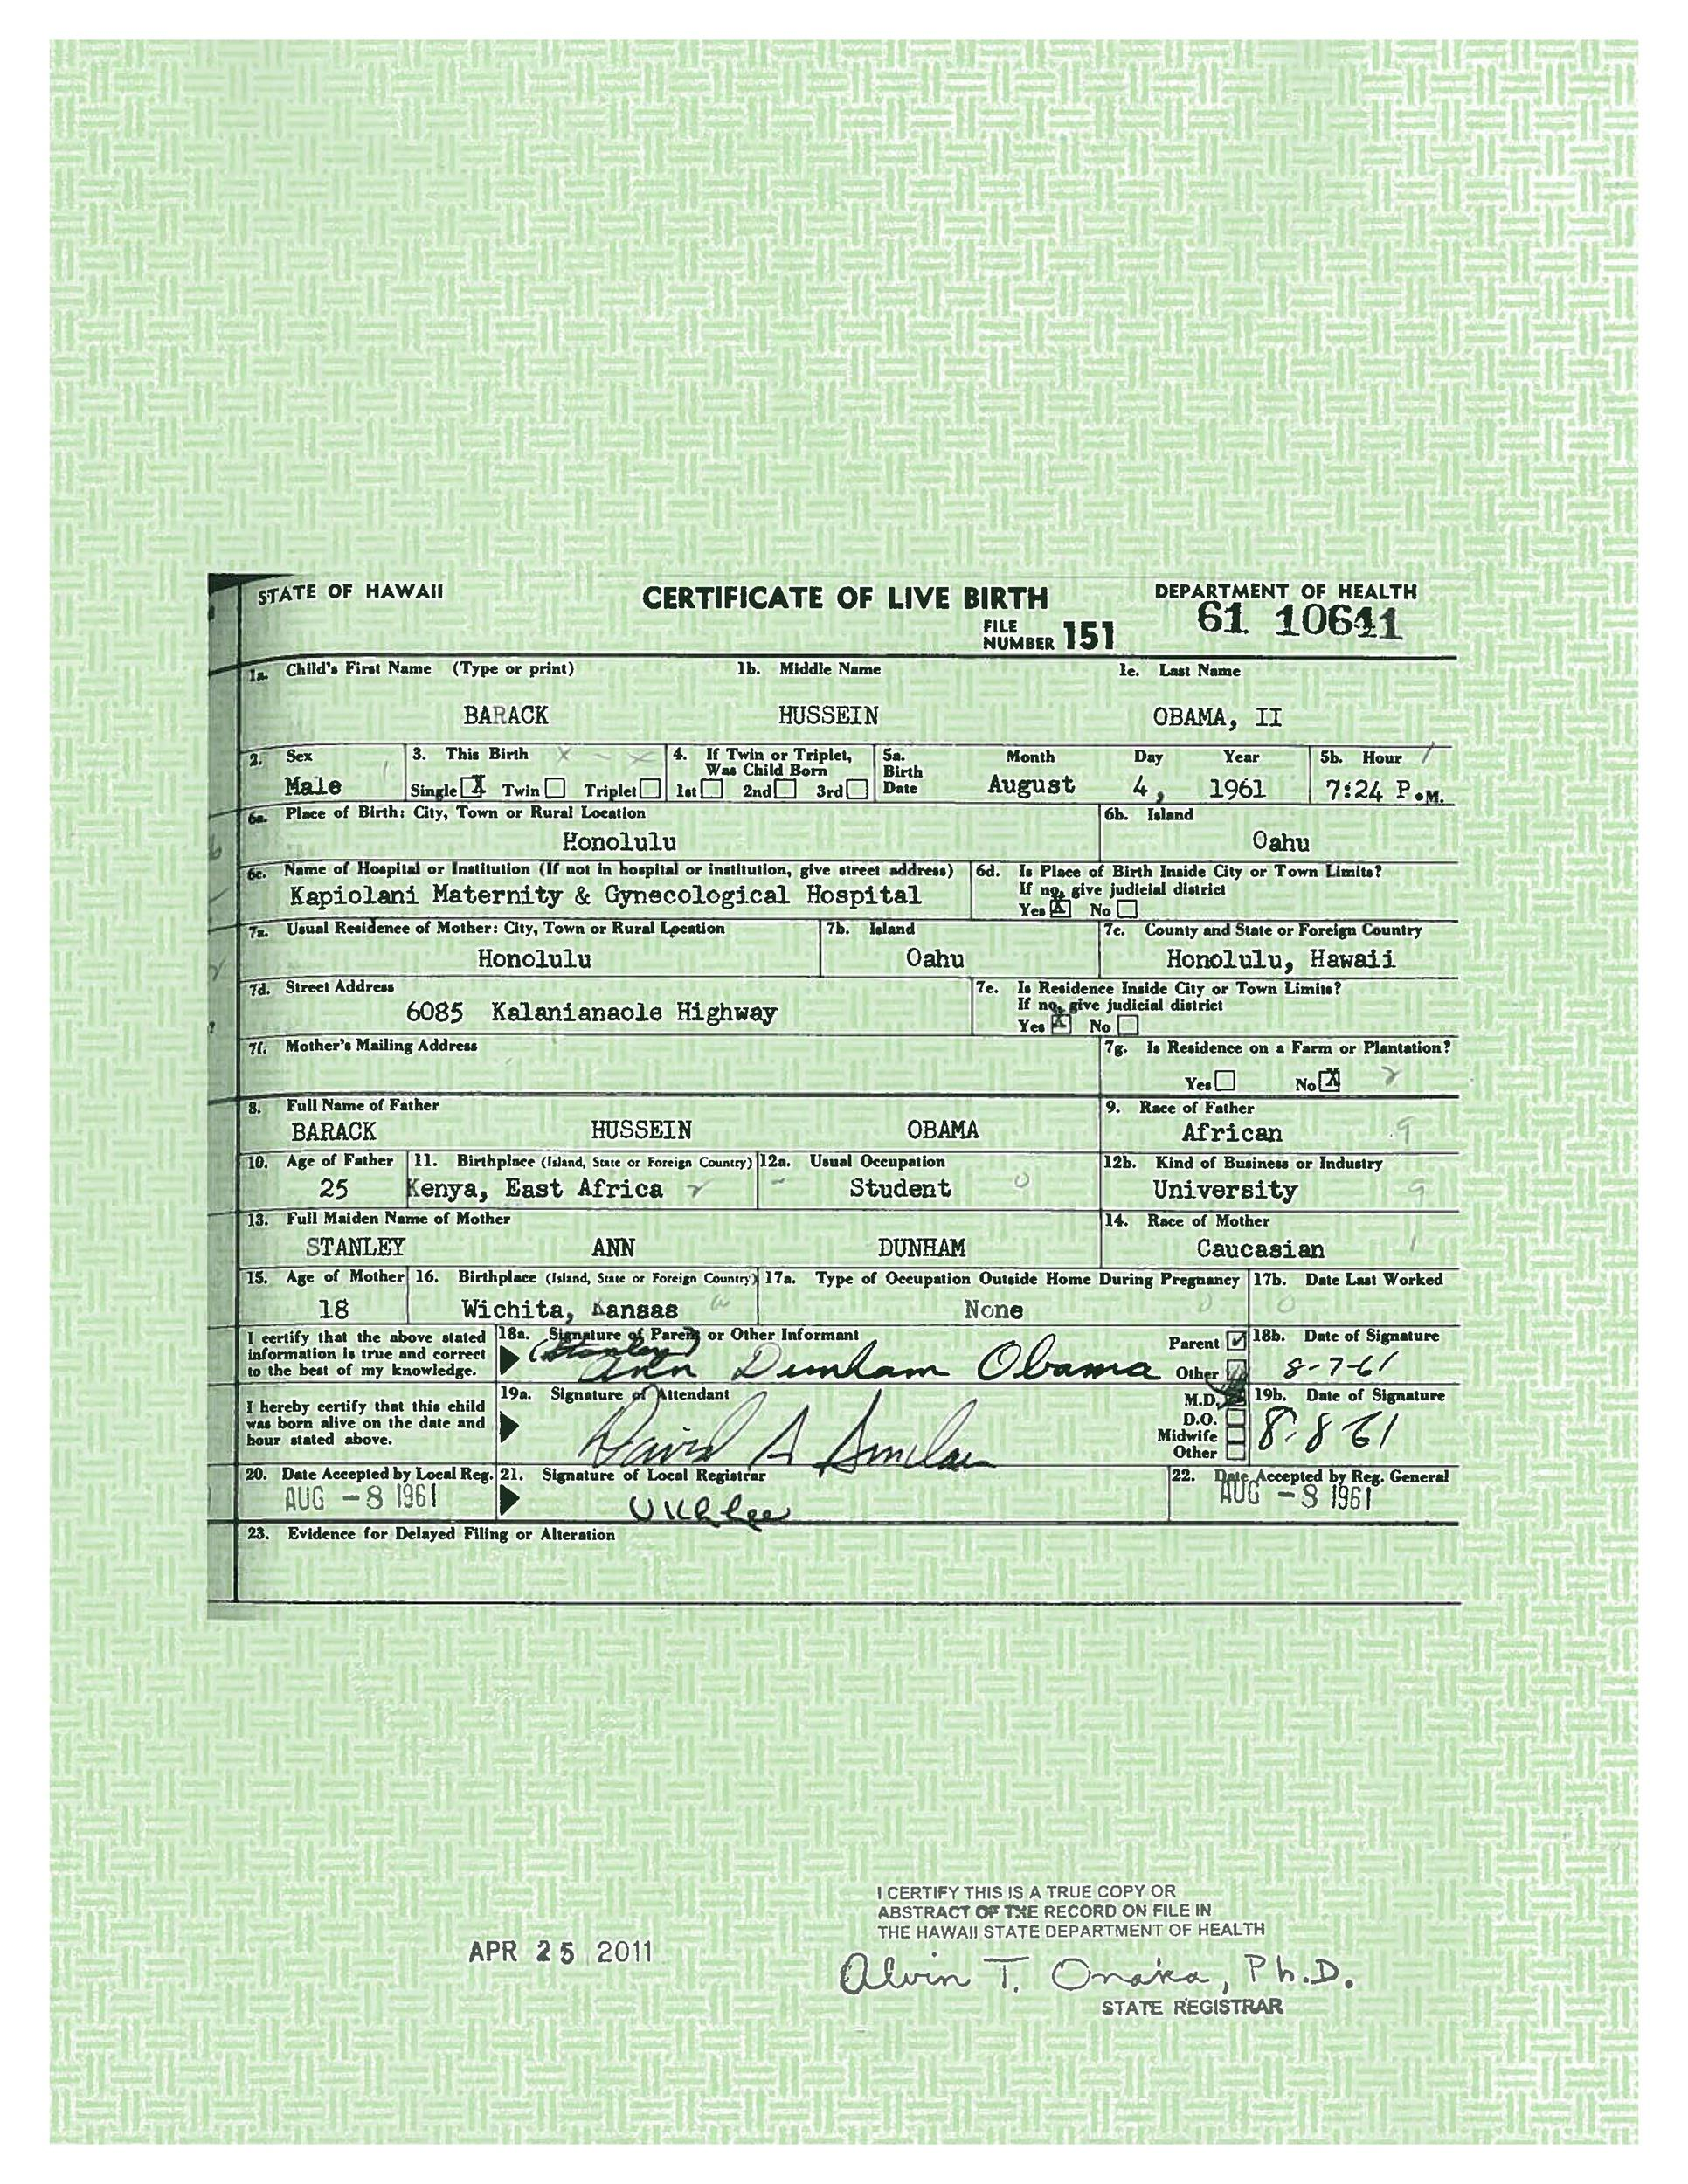 15 Birth Certificate Templates (Word & PDF) ᐅ TemplateLab